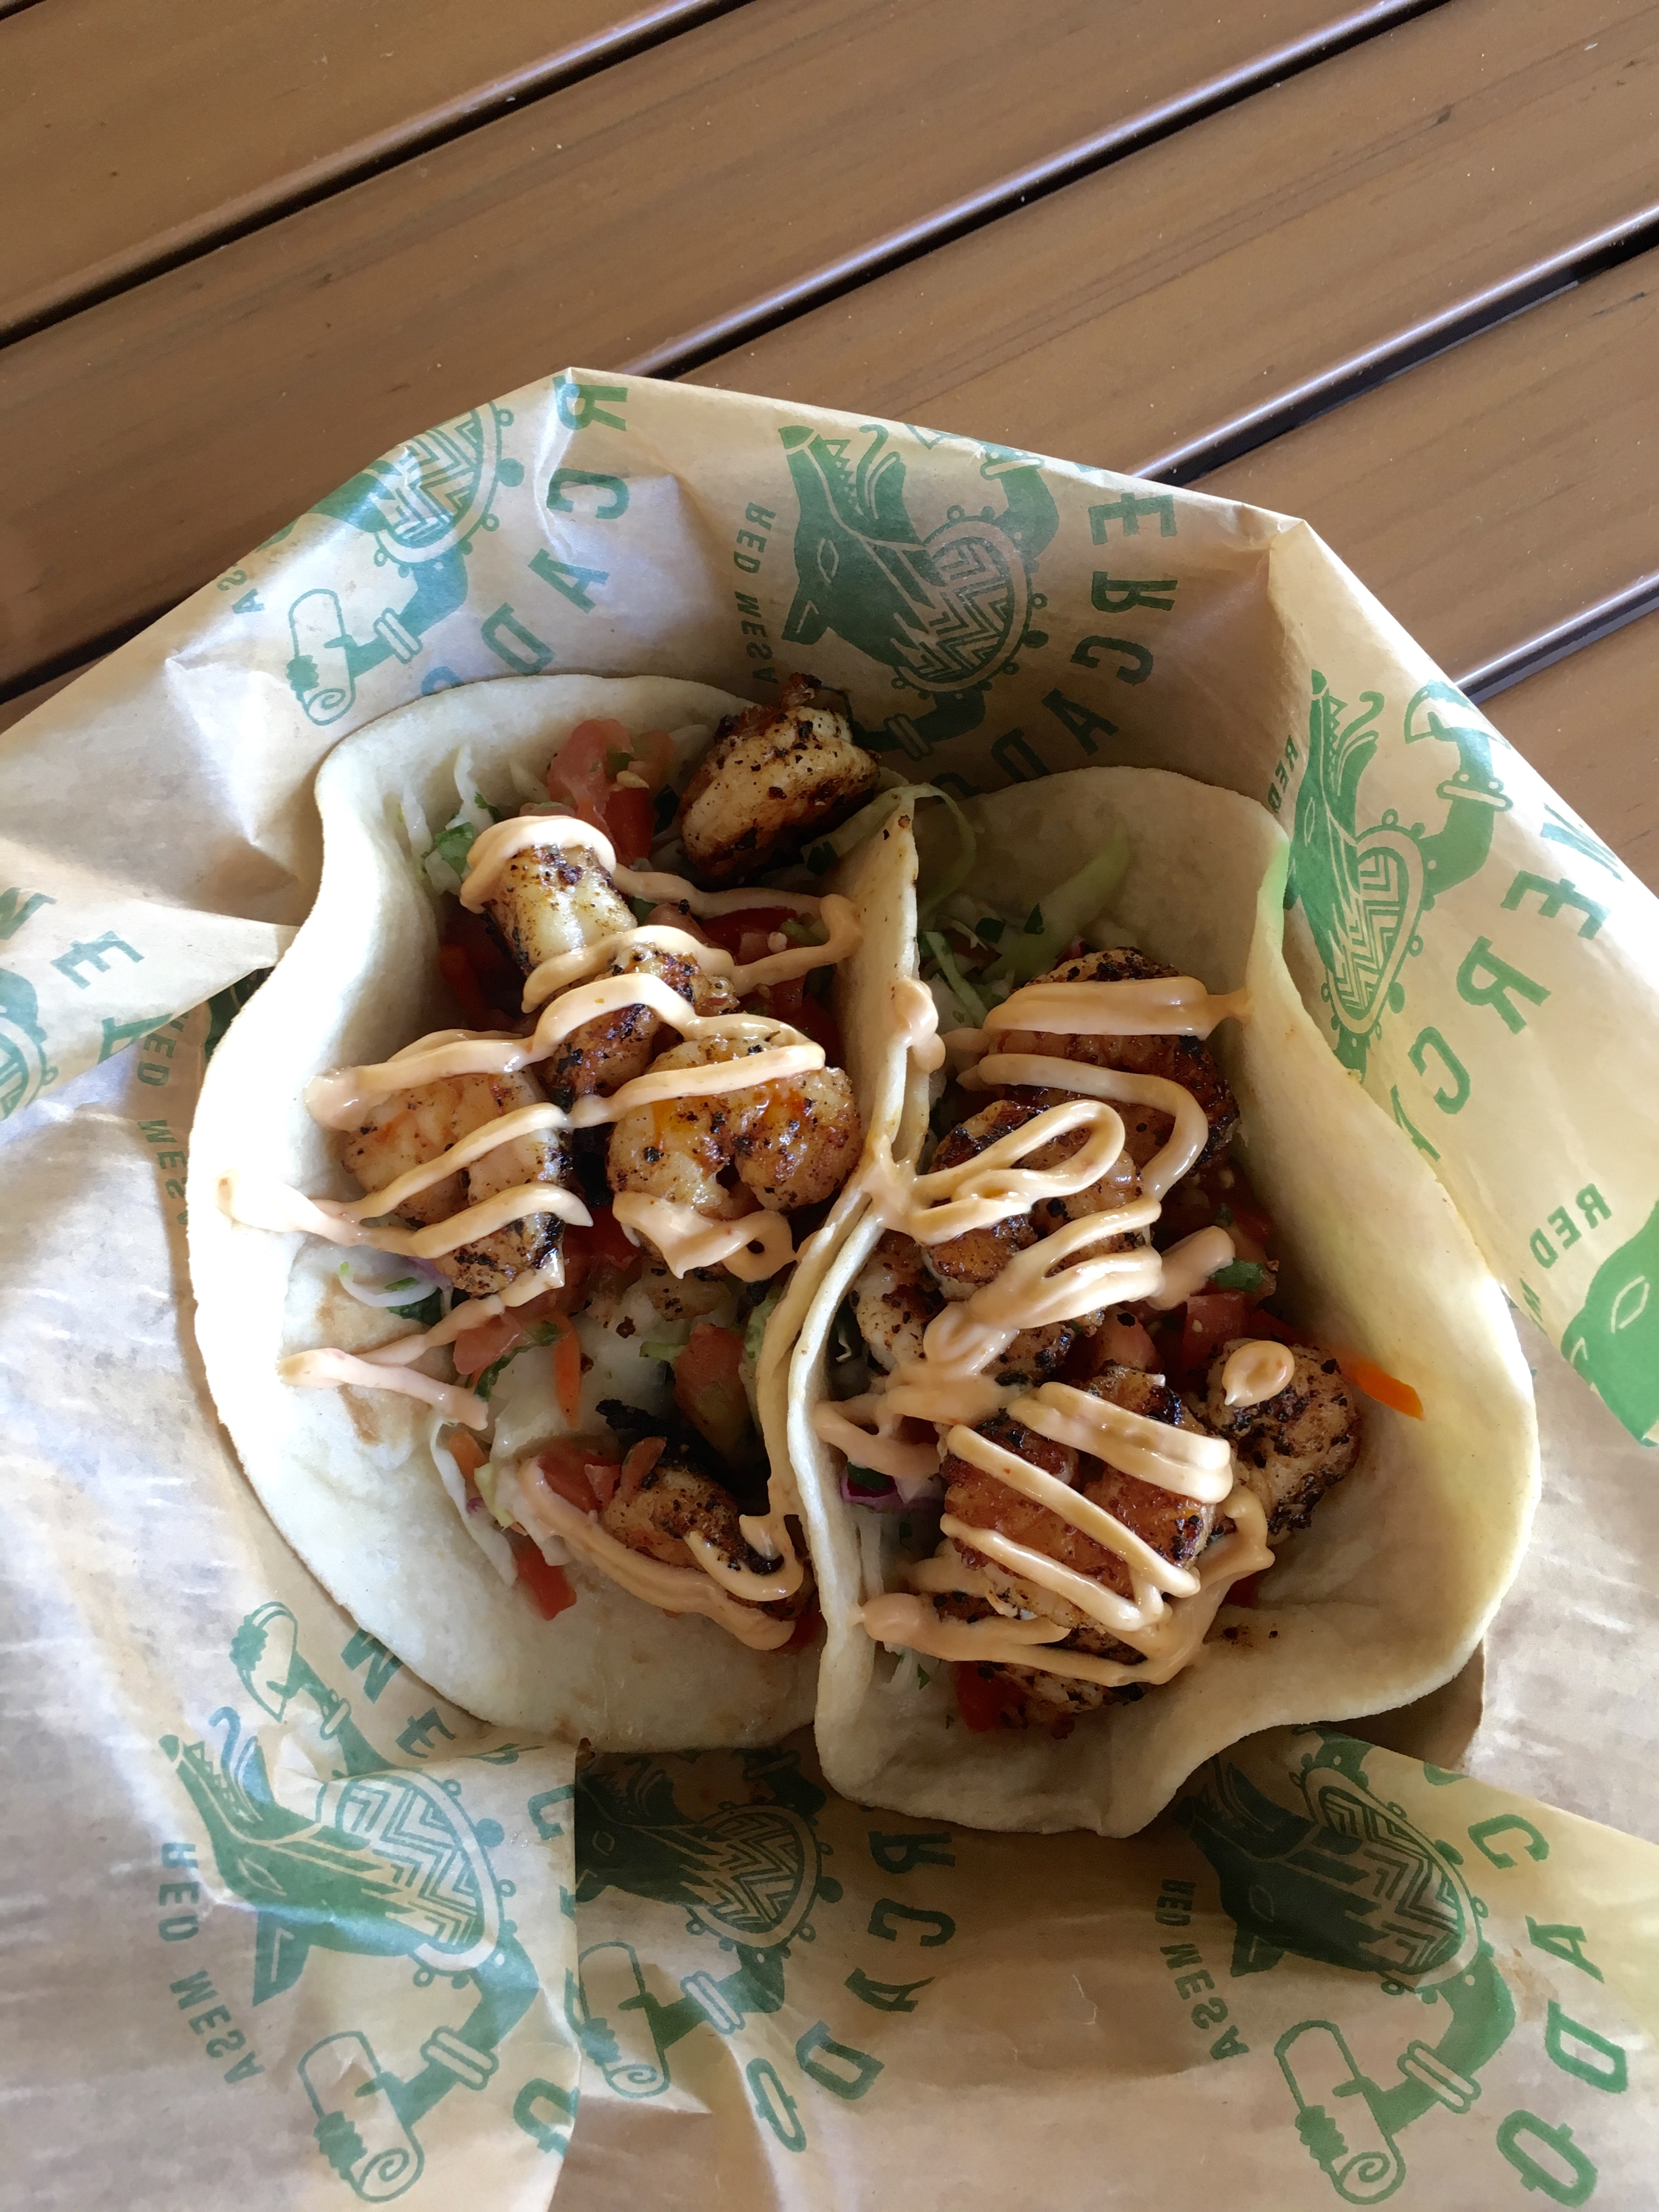 Shrimp tacos at Red Mesa Mercado - Top 10 Taco Spots in St. Pete, FL